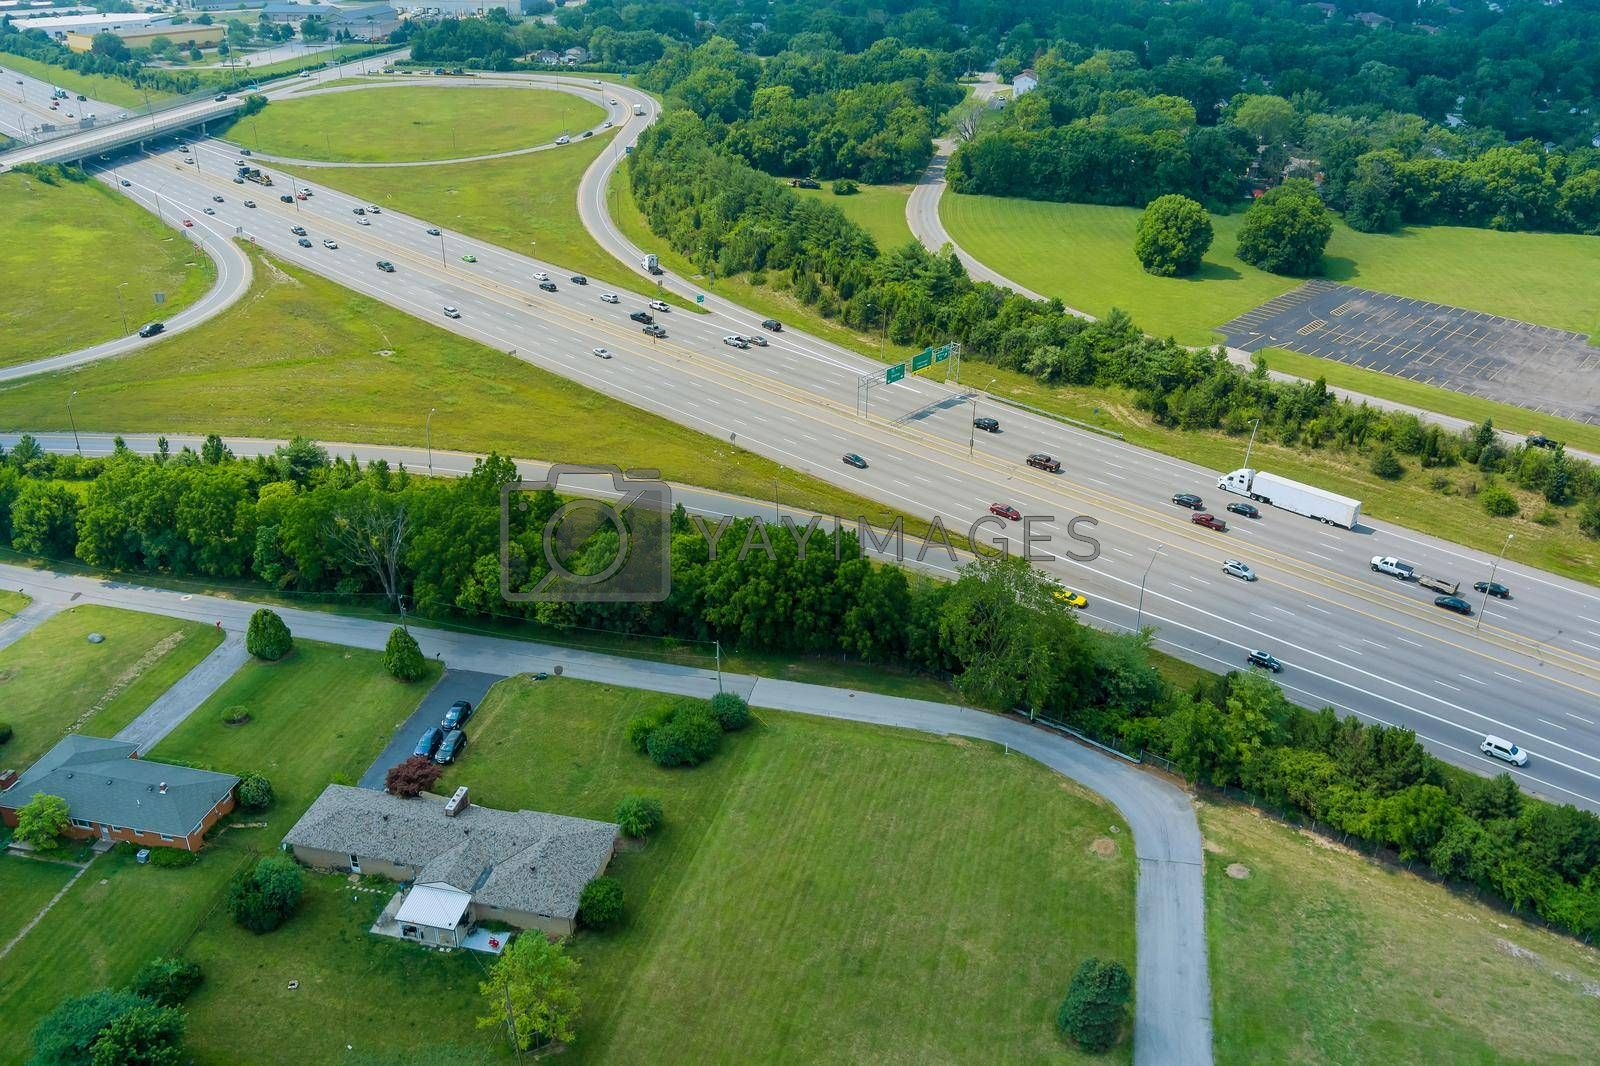 Royalty free image of Highway US interstate 70 through the Scioto Woods, Columbus, Ohio USA of aerial view by ungvar